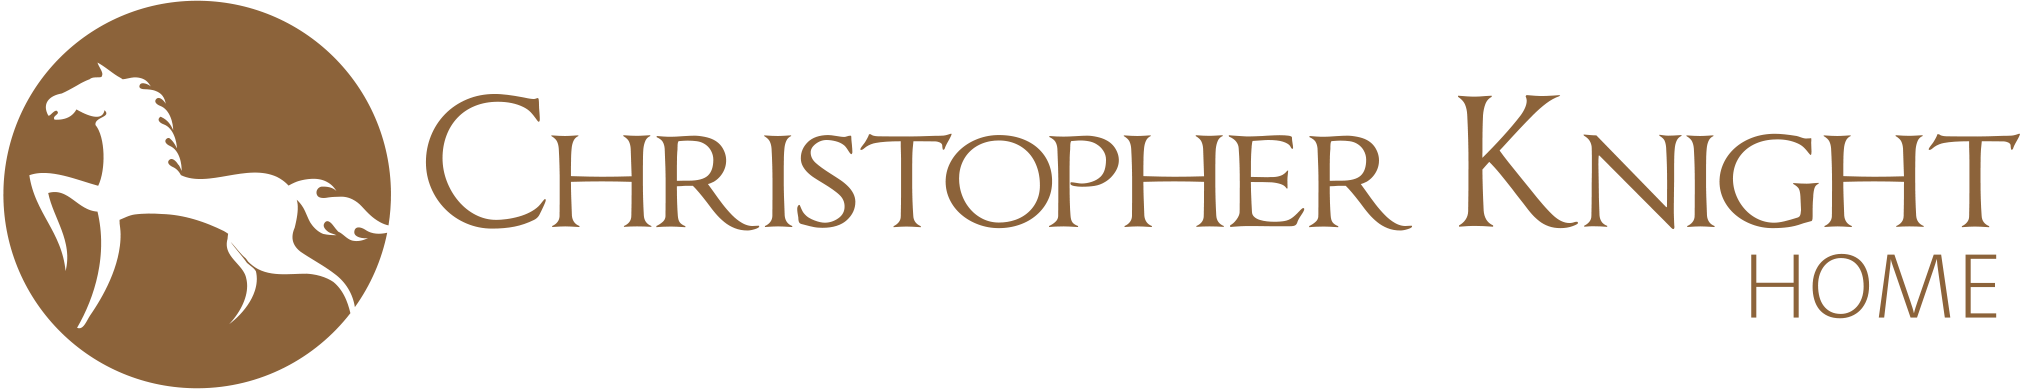 christopher knight home logo